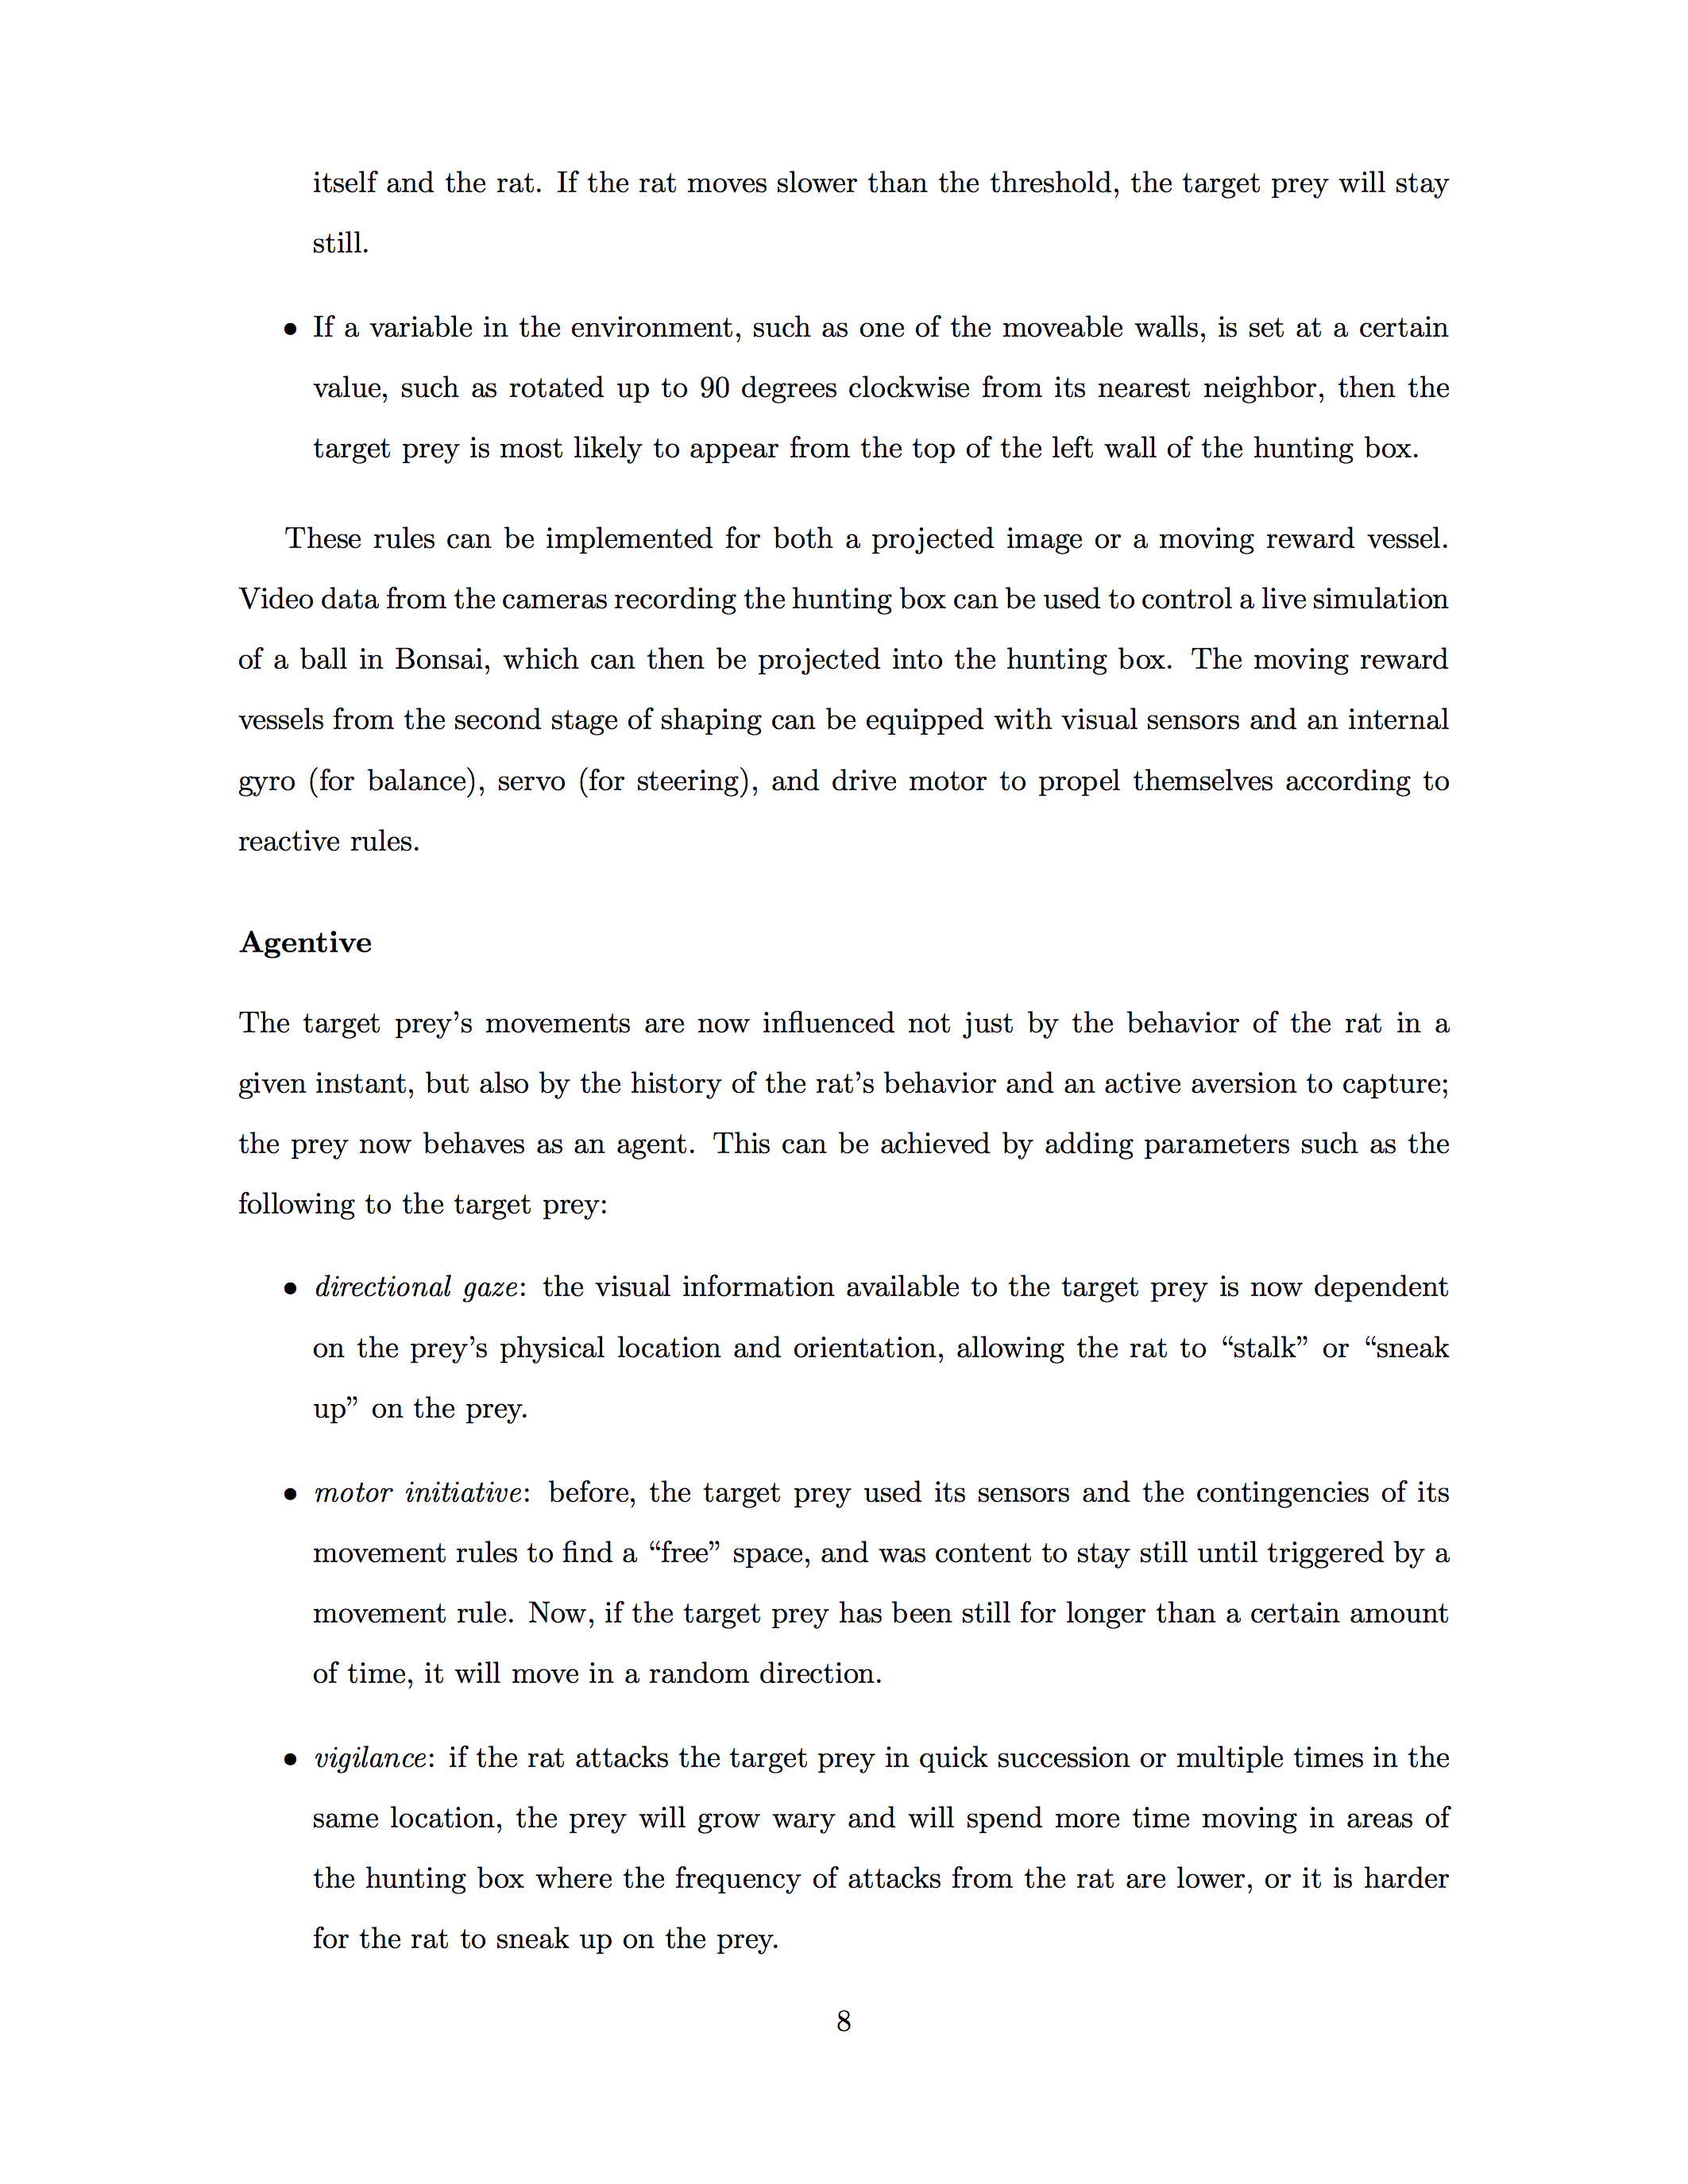 PhD thesis proposal, page 08